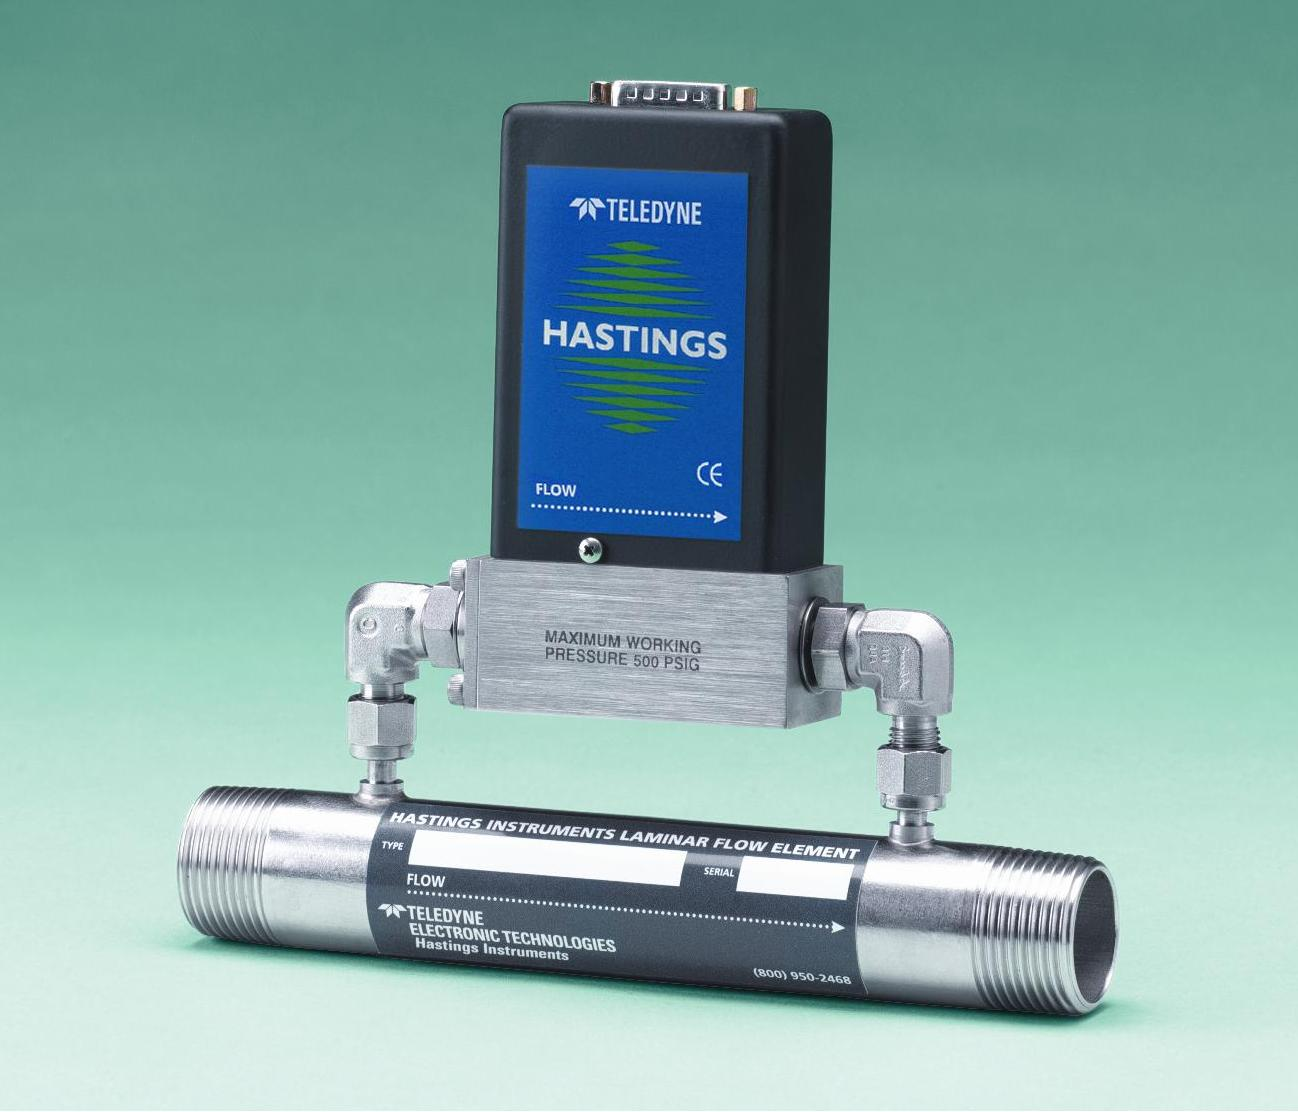 HFM-200 Mass Flow Meter with Laminar Flow Element